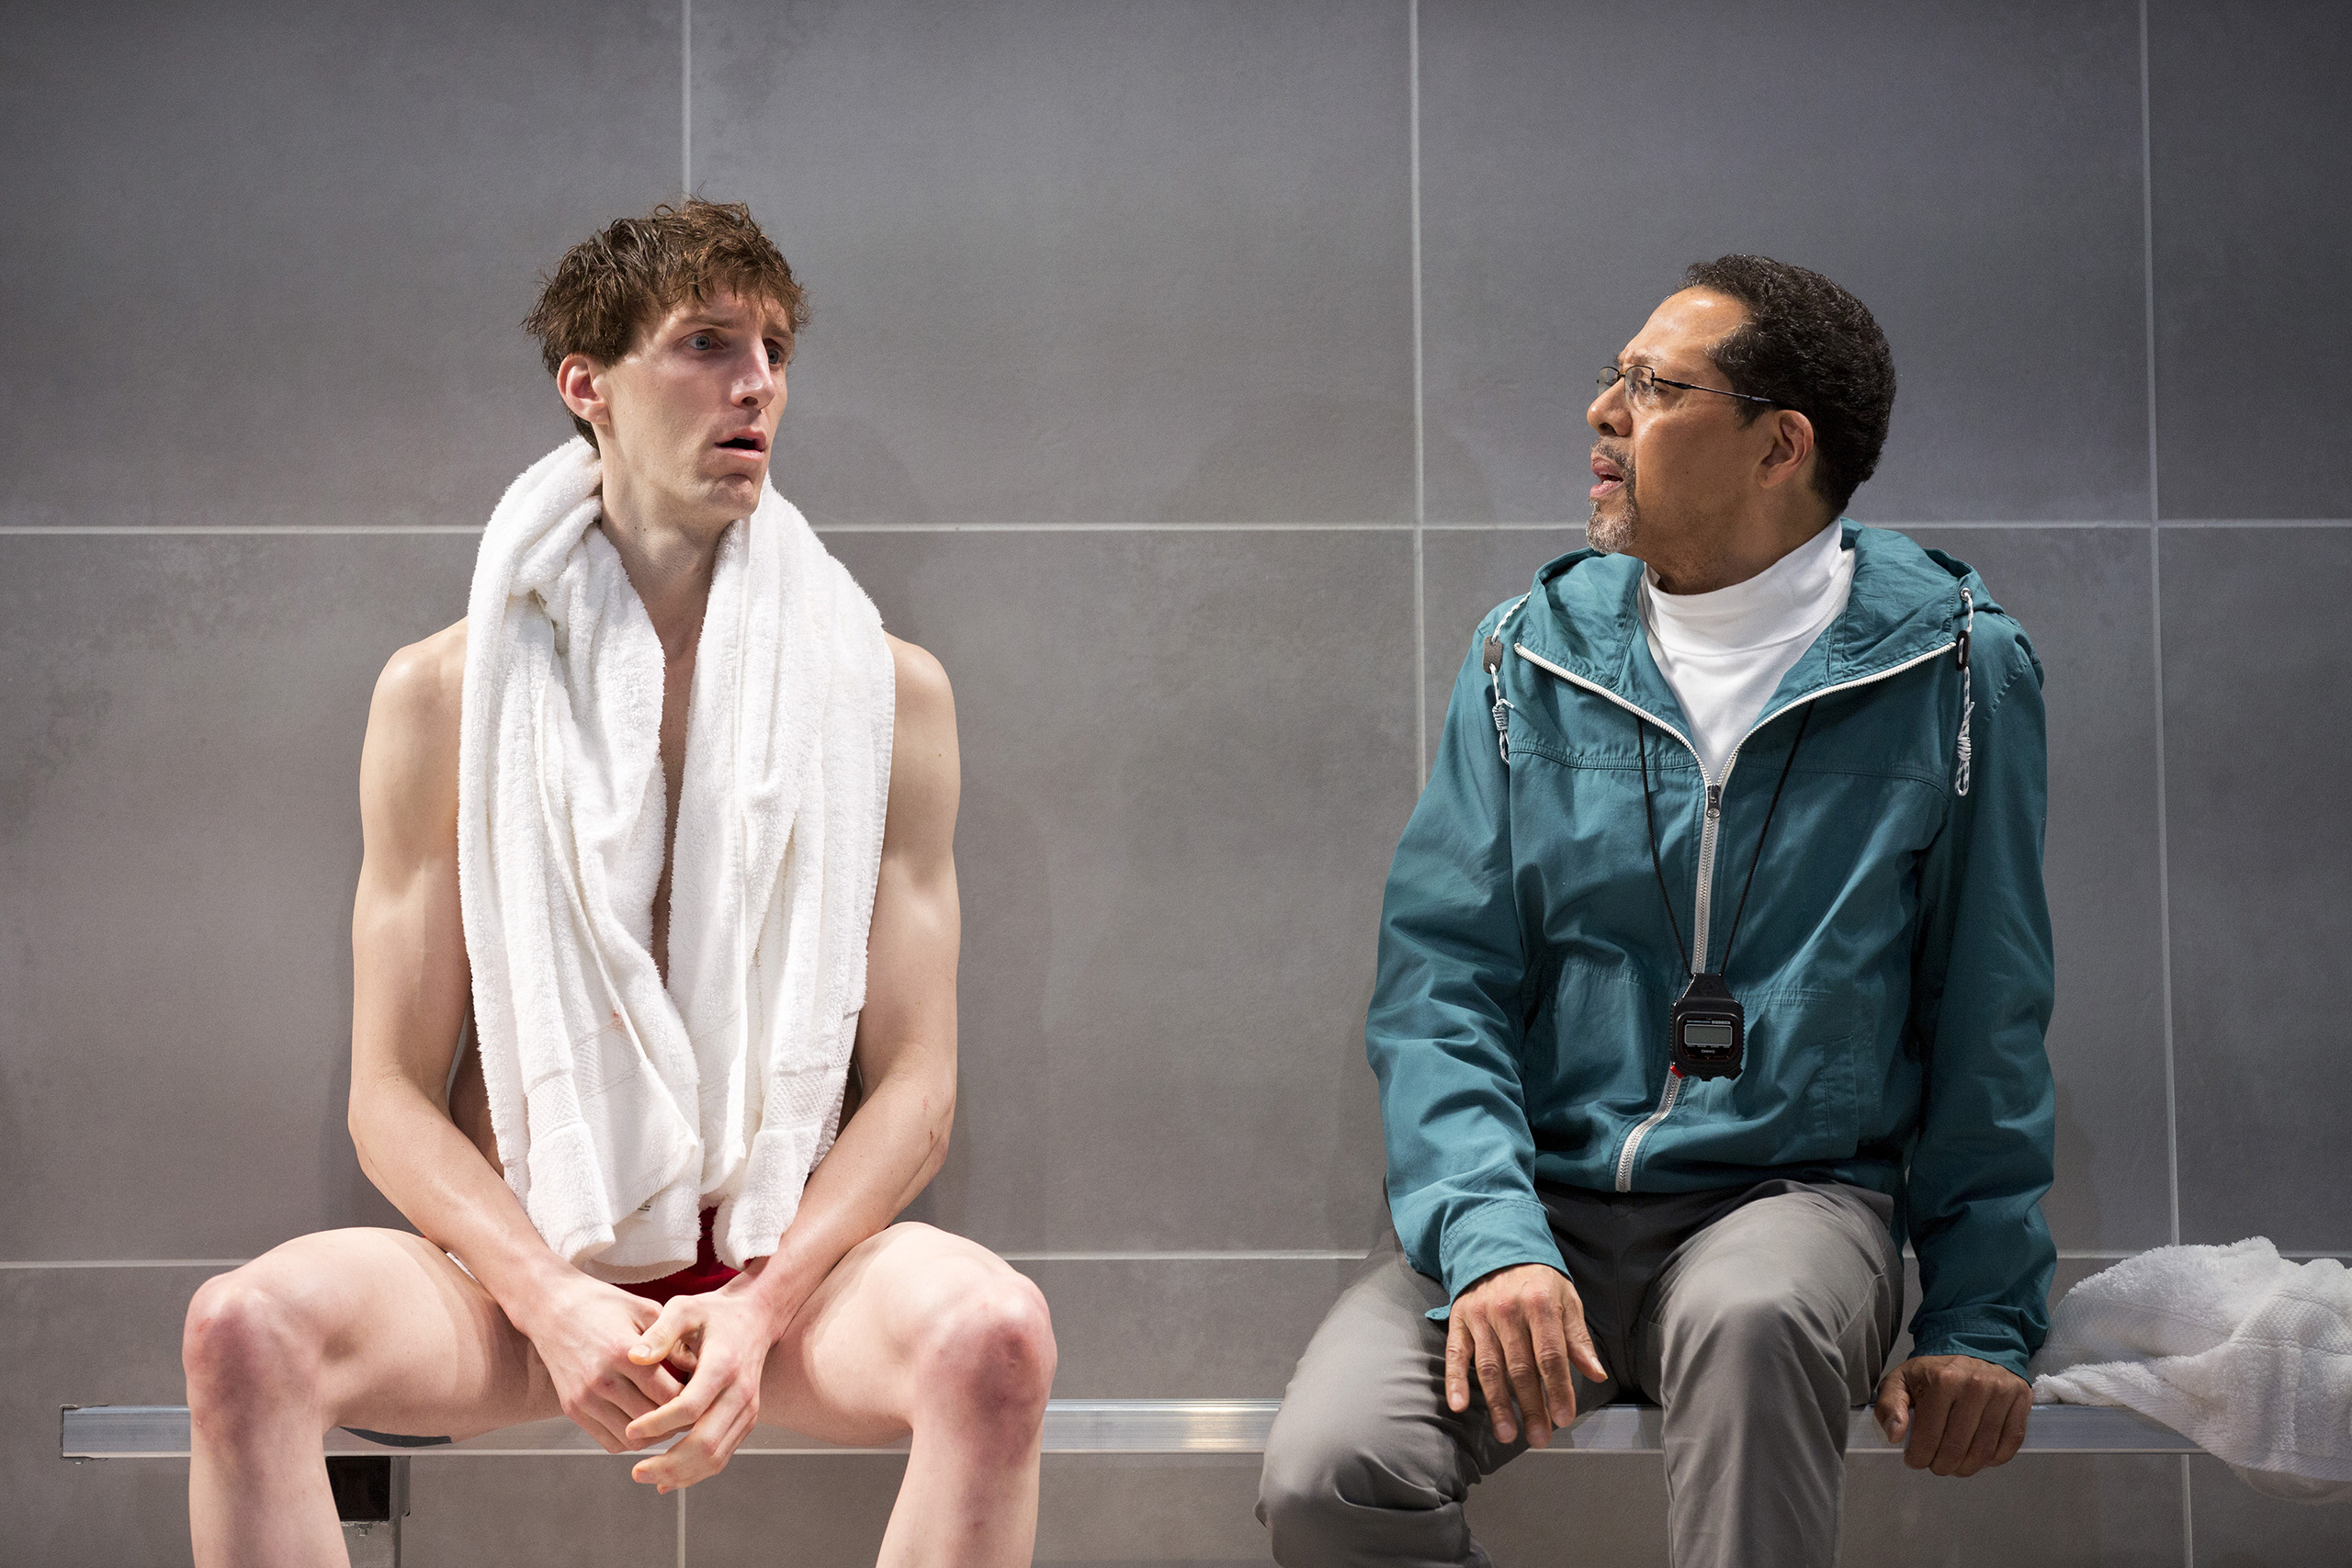 Alex Breaux, left, and Peter Jay Fernandez in a scene from the play  Red Speedo  at the New York Theater, Feb. 10, 2016. Breaux, formerly a Harvard wide receiver who opted for an acting career, plays a champion swimmer in the play. (Sara Krulwich/The New York Times)